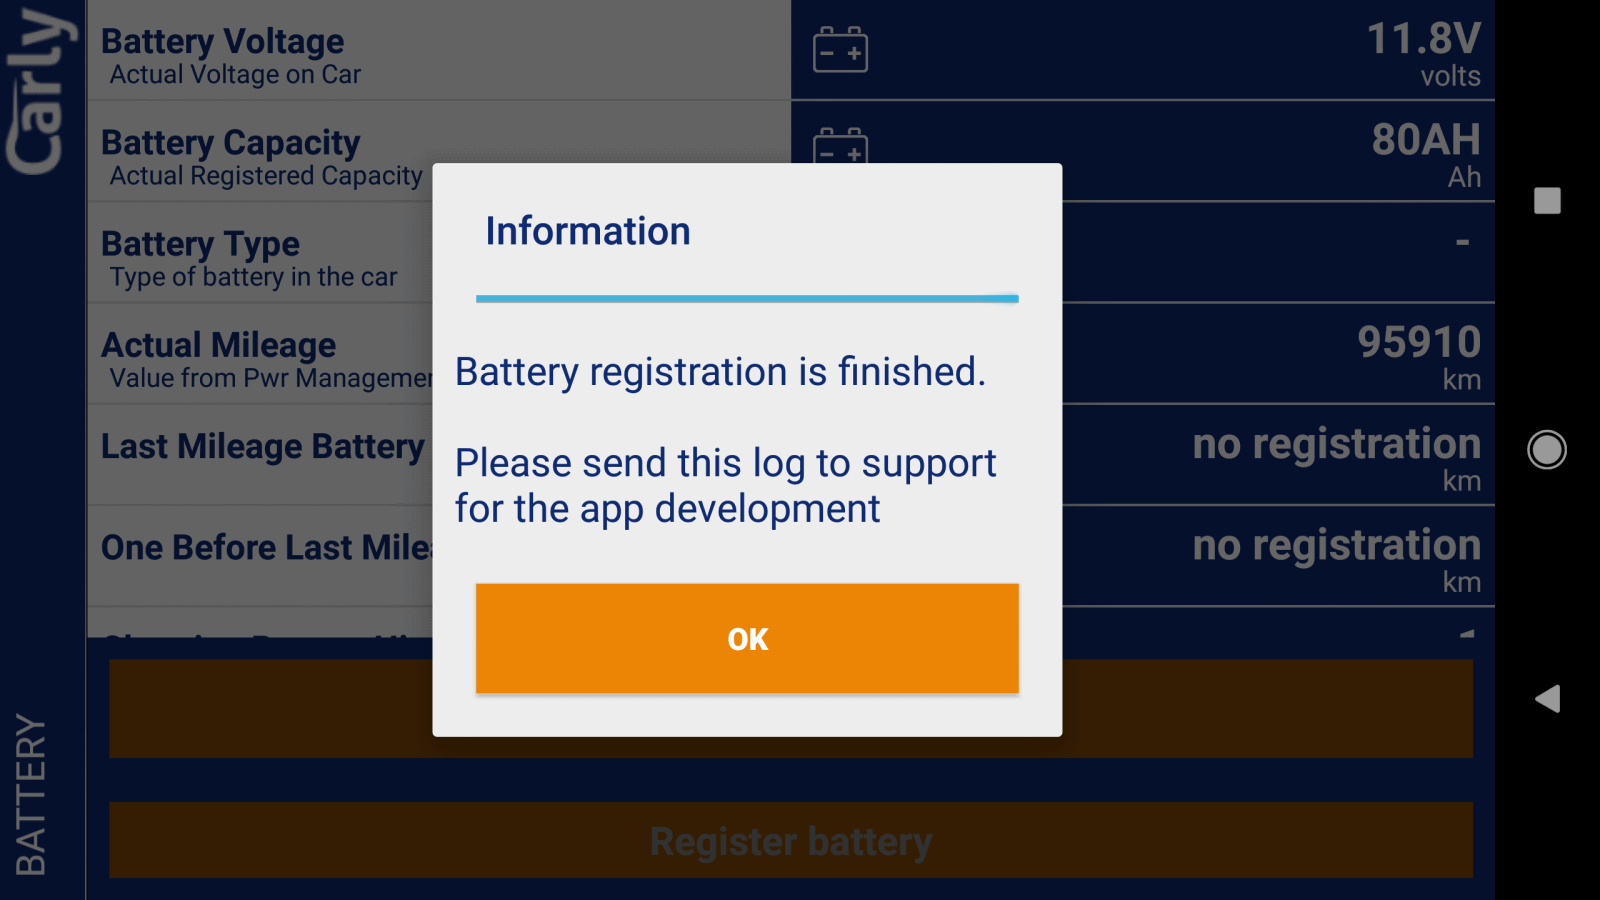 Is Carly Battery Registration a Scam - Does it really work